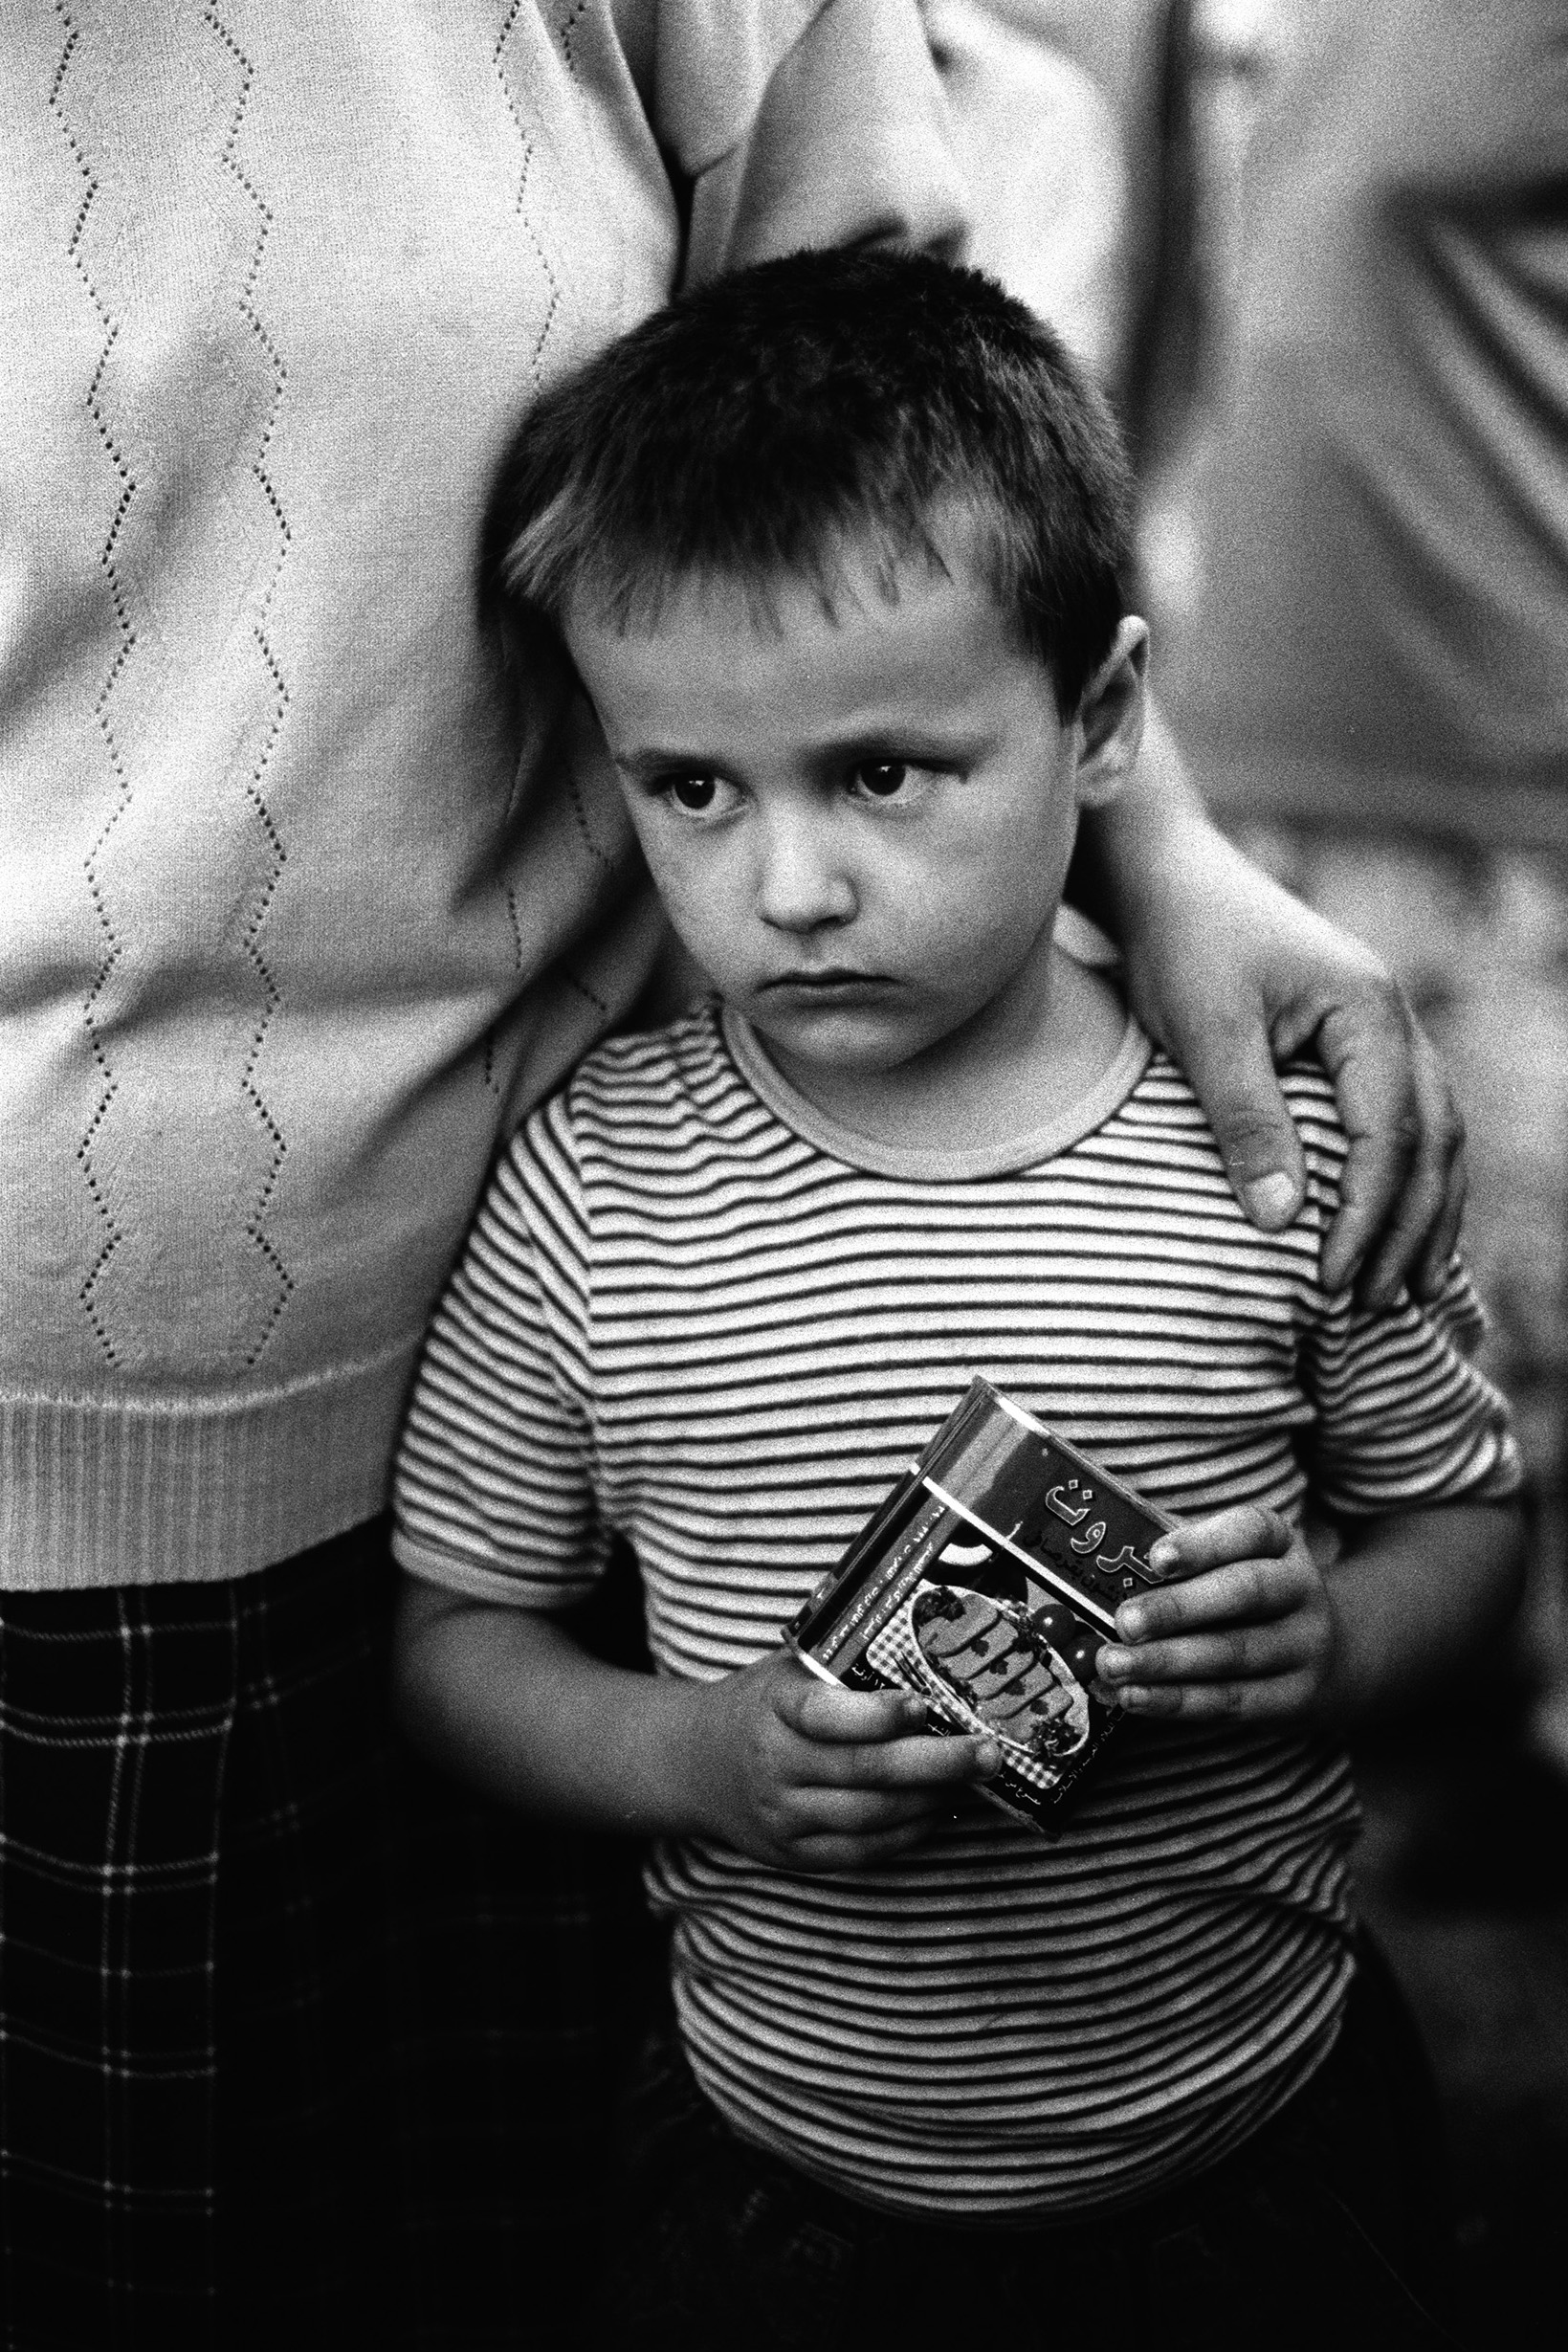 Asmir Kadijic, 7, holds his and his mother's ration of canned spam like meat. Asmir found the bodies of his father, uncle and grandfather, lying in front of his house, shortly after they were executed by Serbian soldiers.